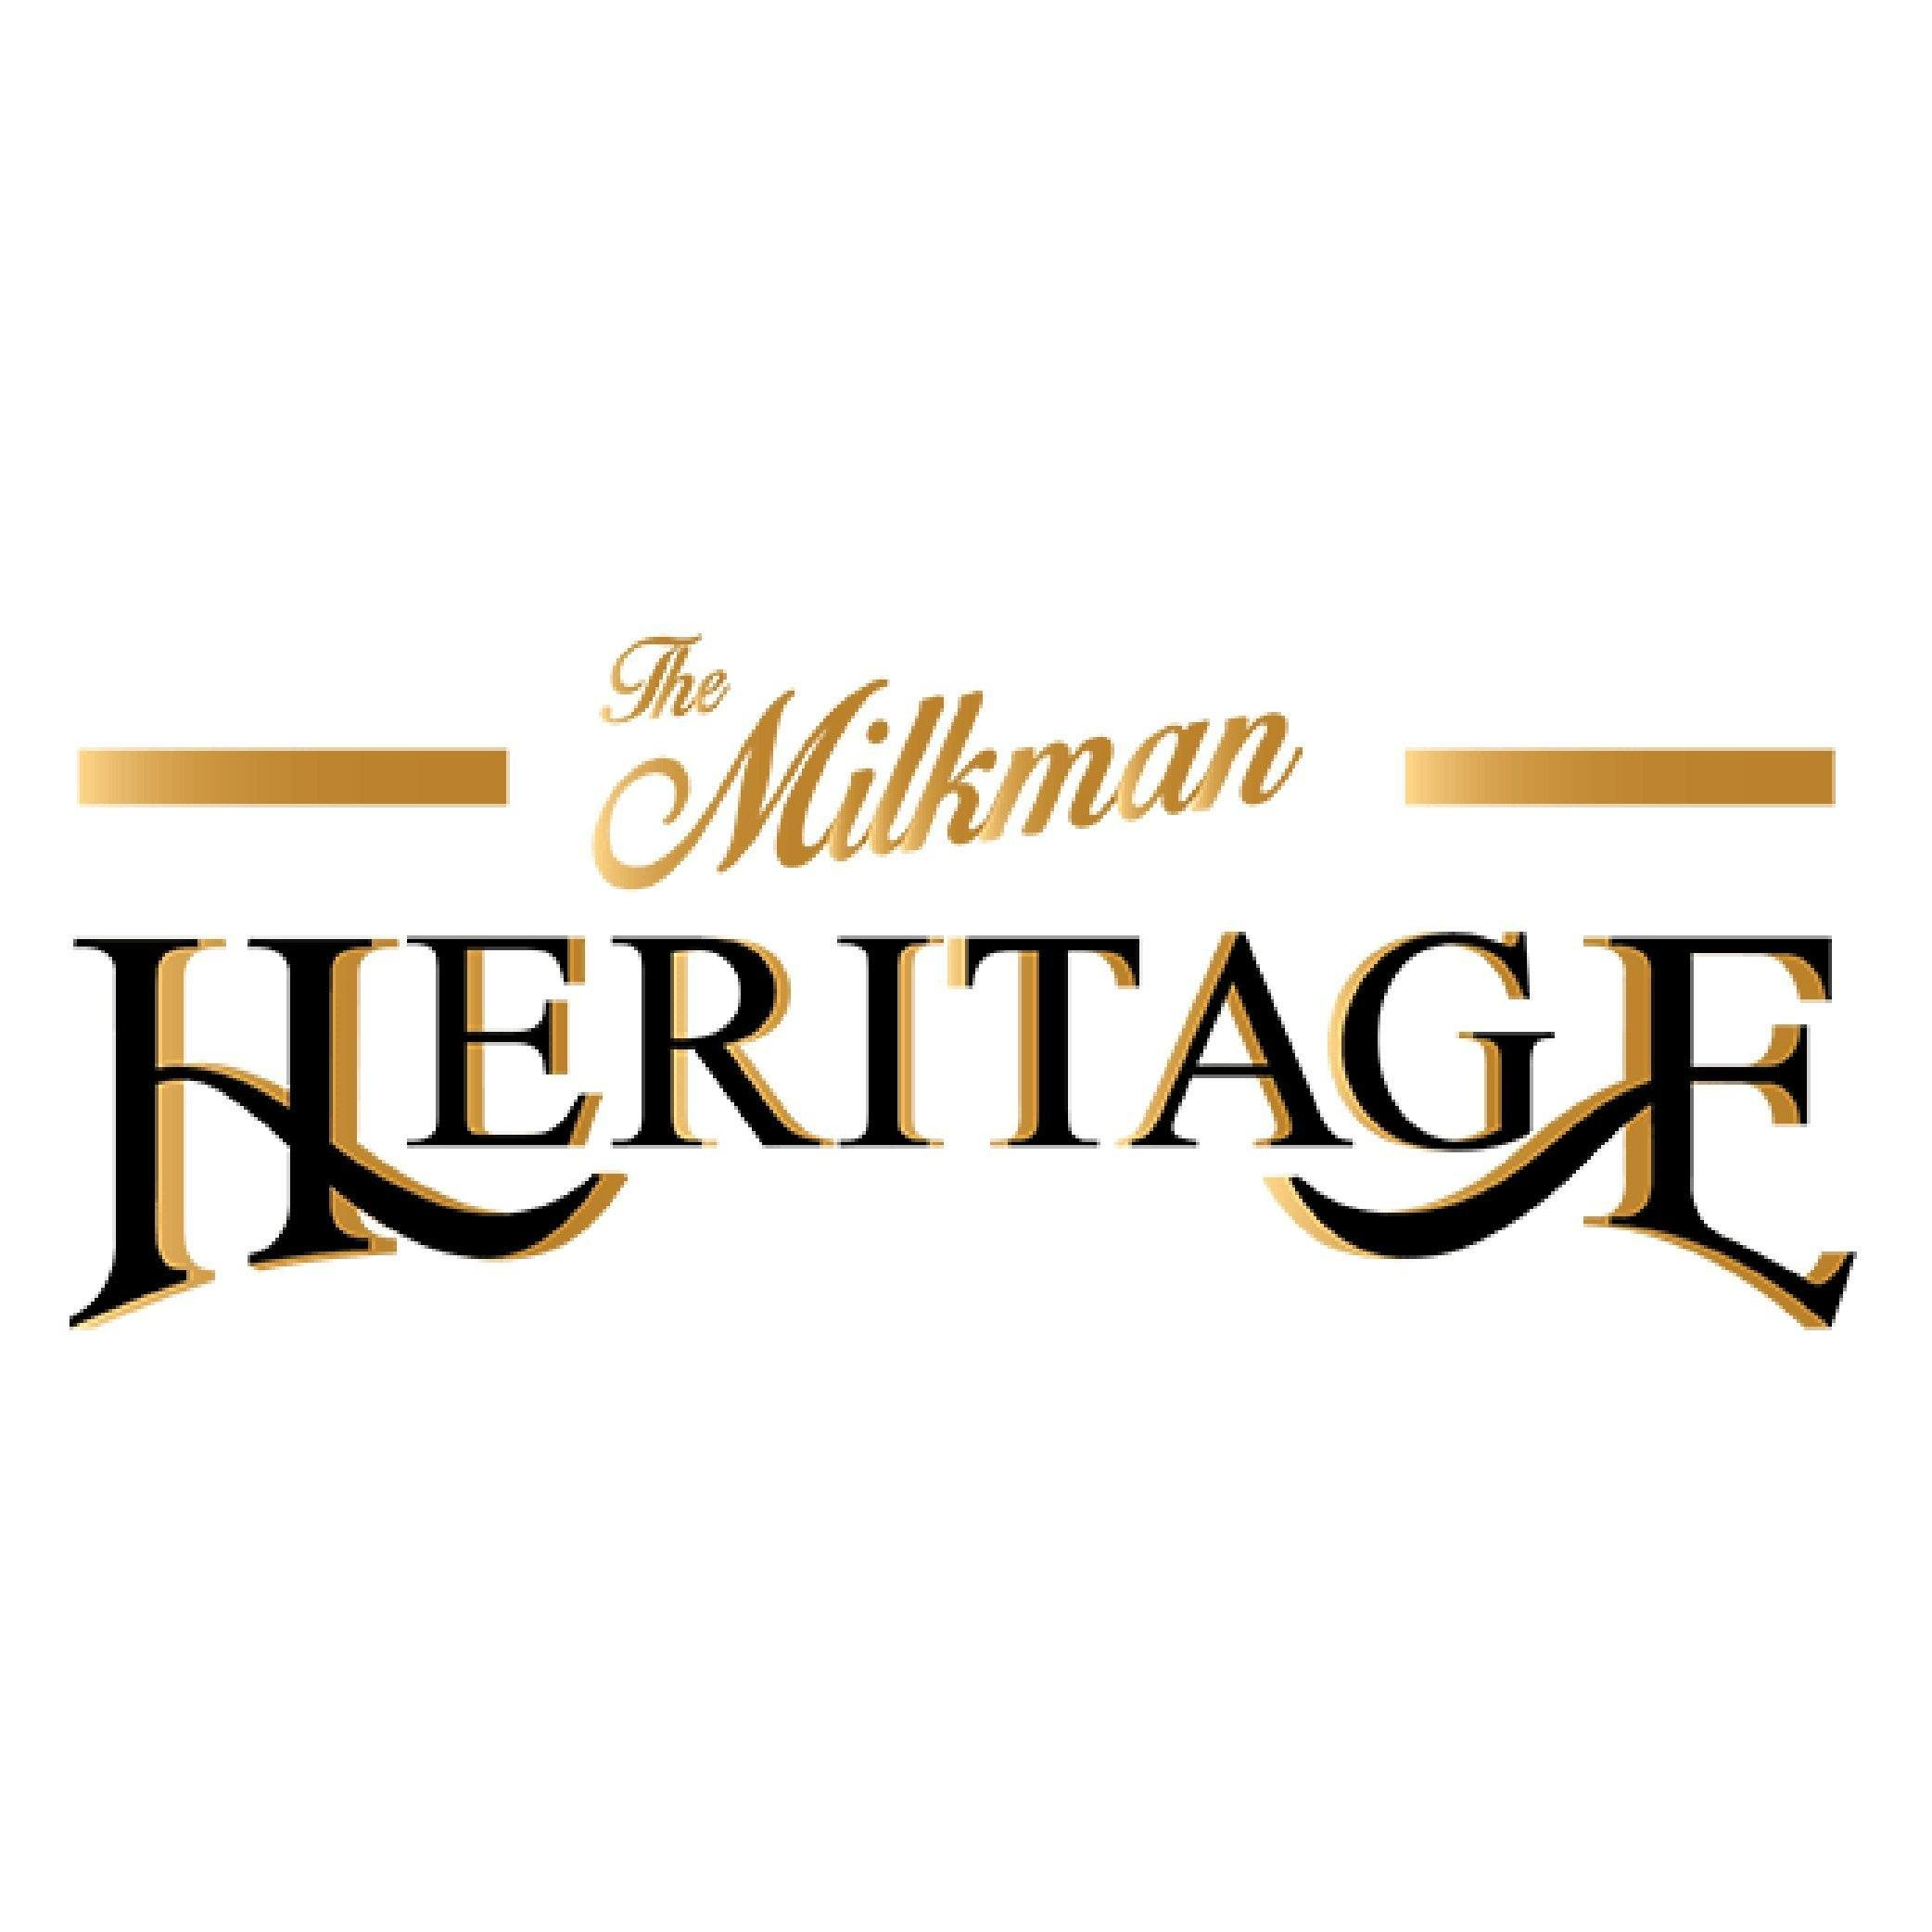 The Milkman Heritage